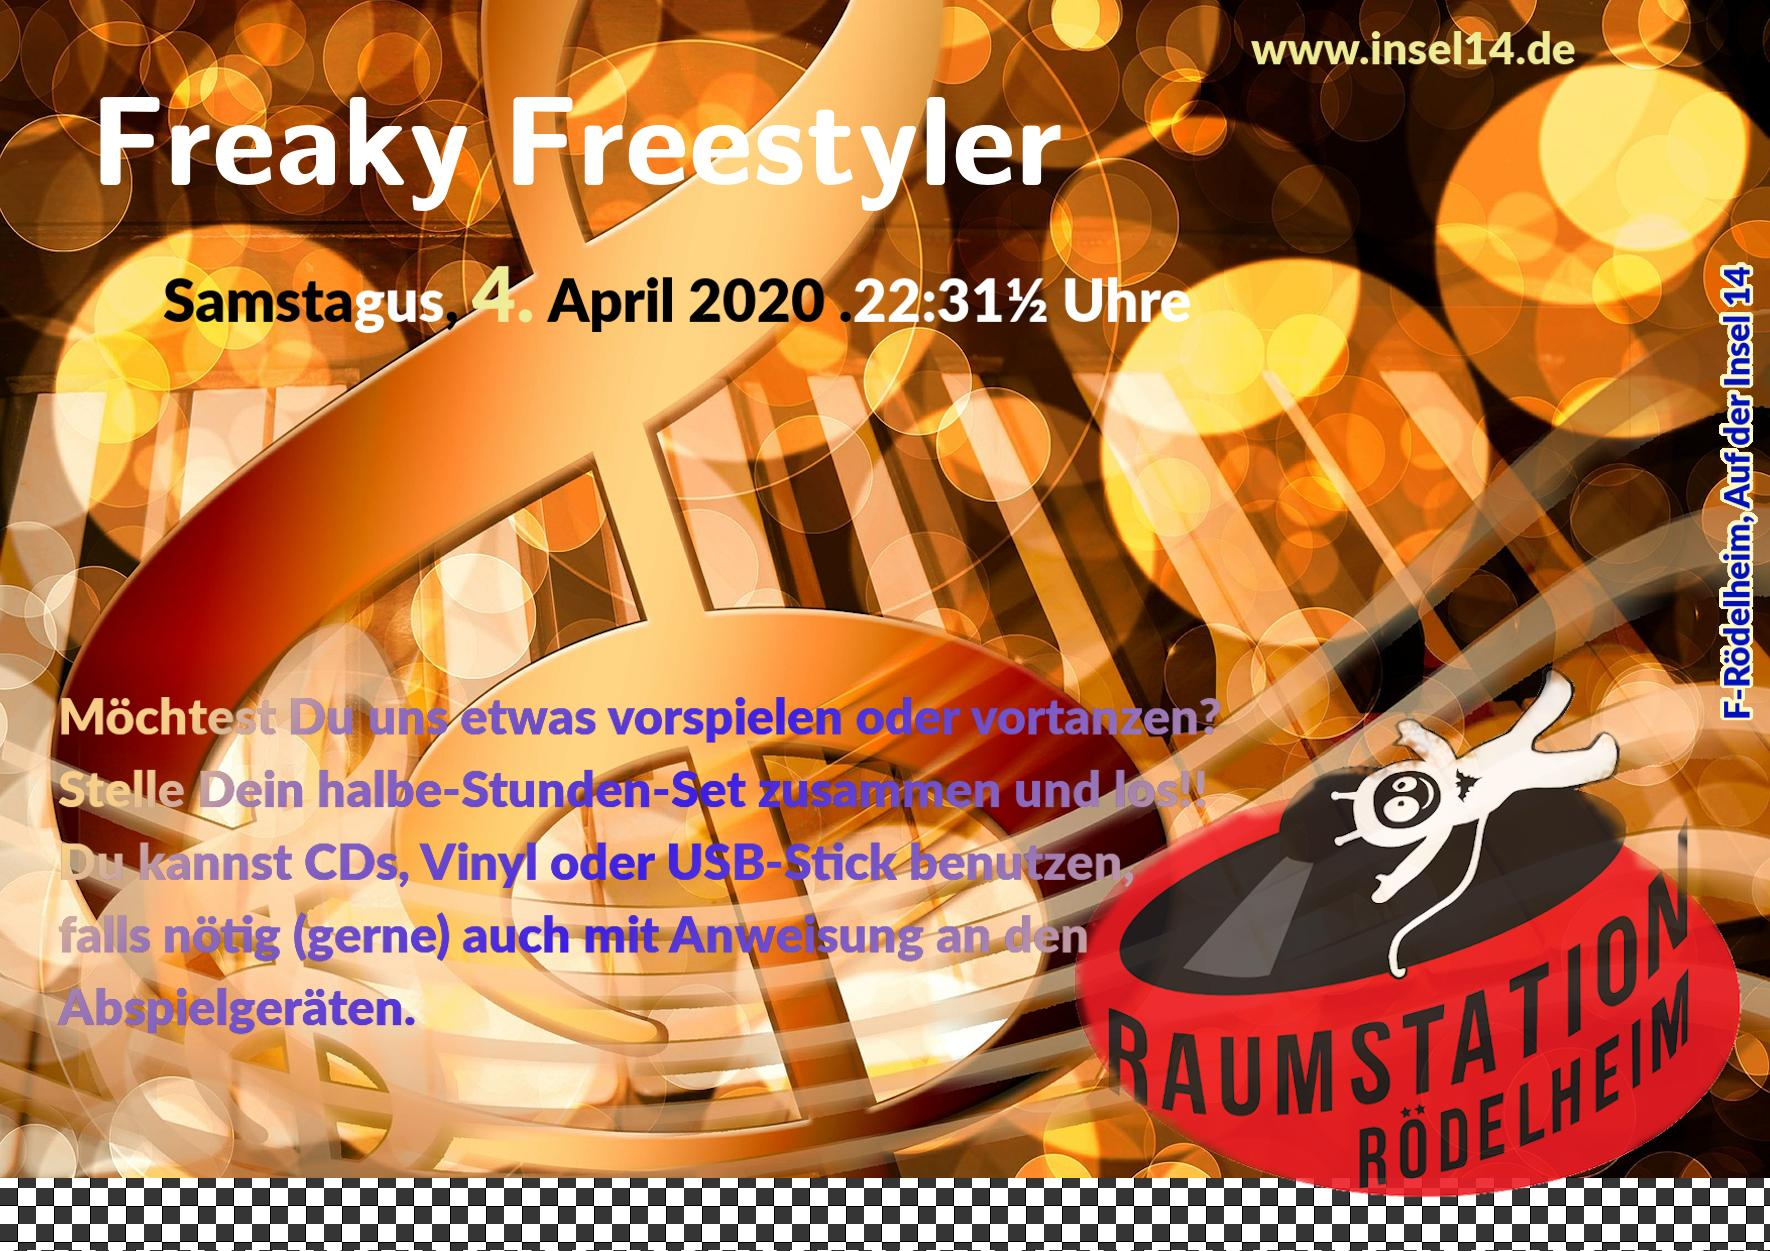 DINA6-Freeky-Freestyler-5.1-final